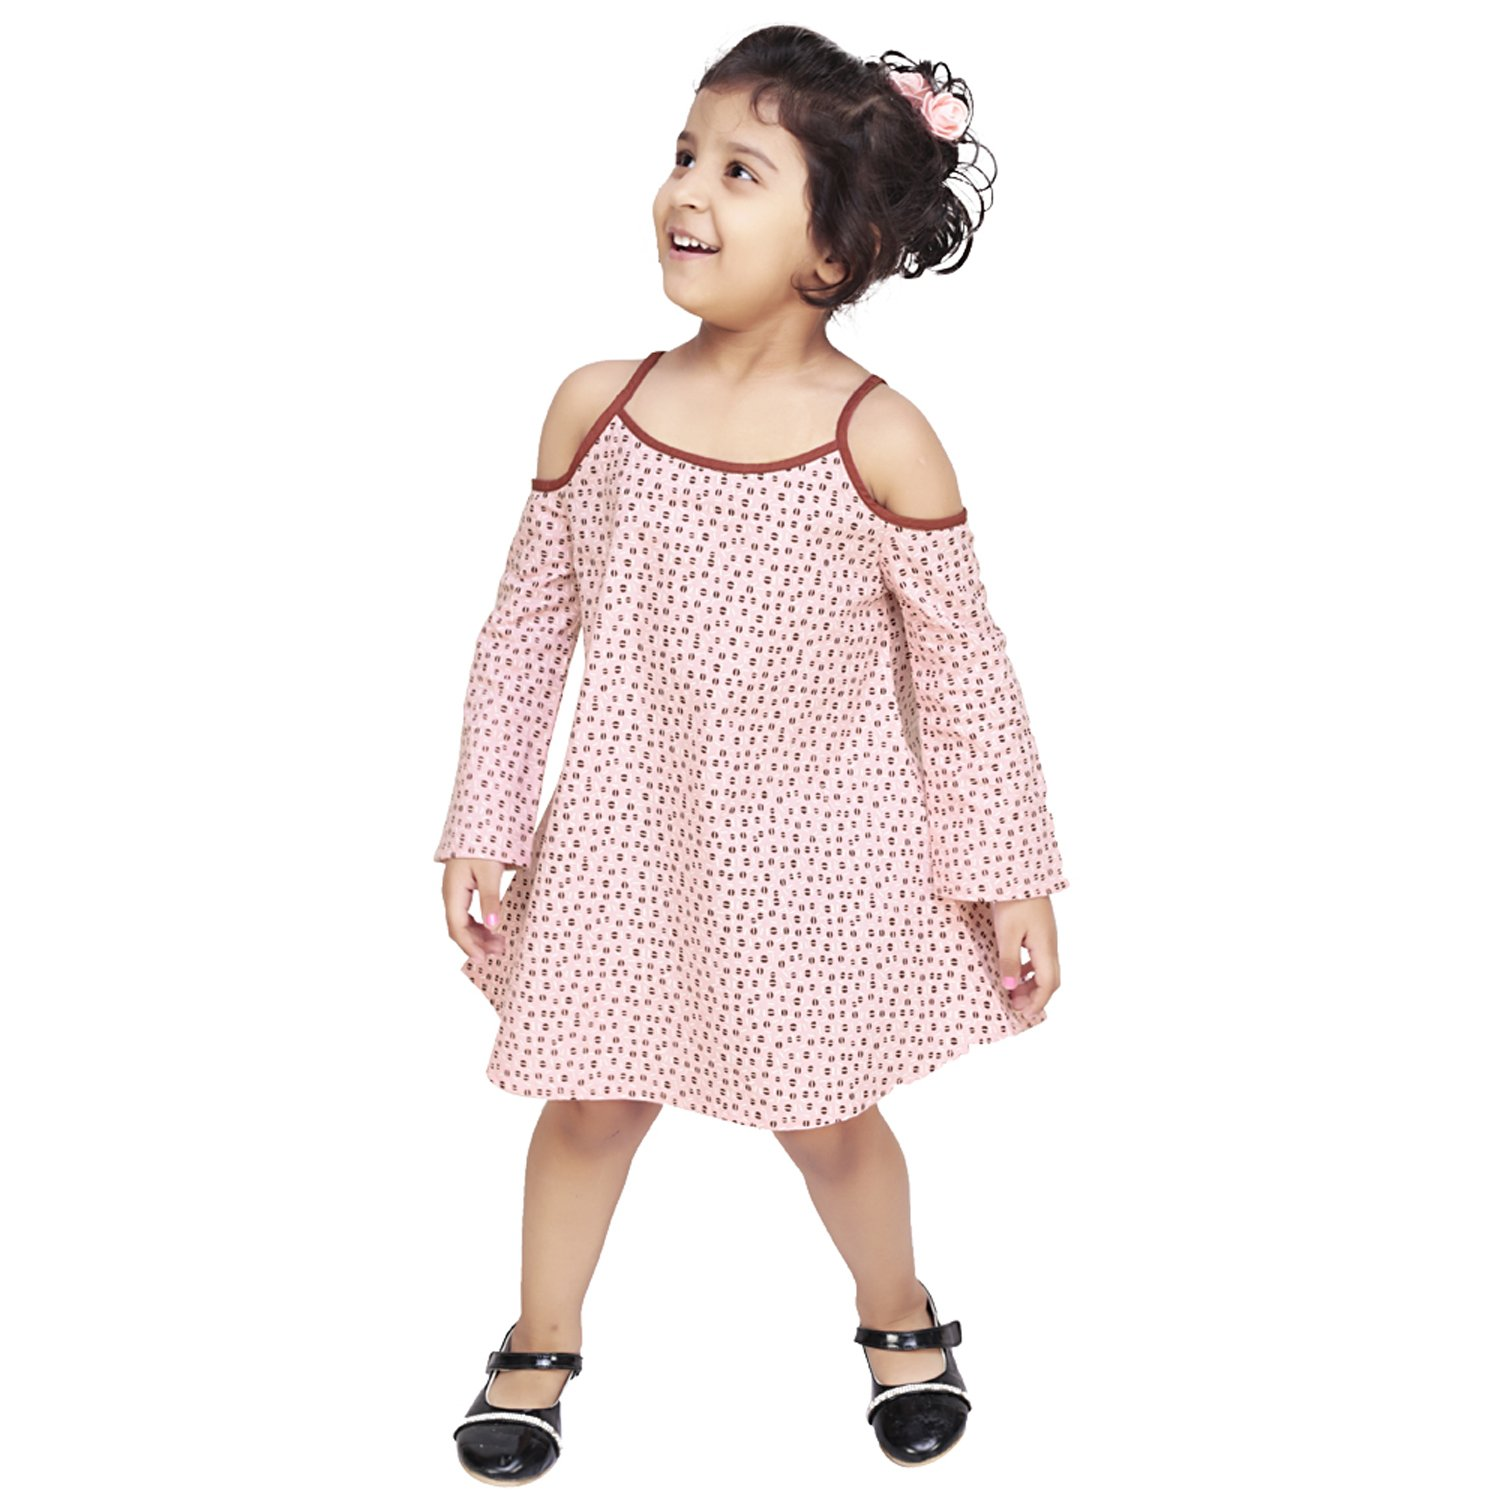 b14d4dcce30d Olele® Girls Black and White Check Strap Dress with Edie Dot Baby ...